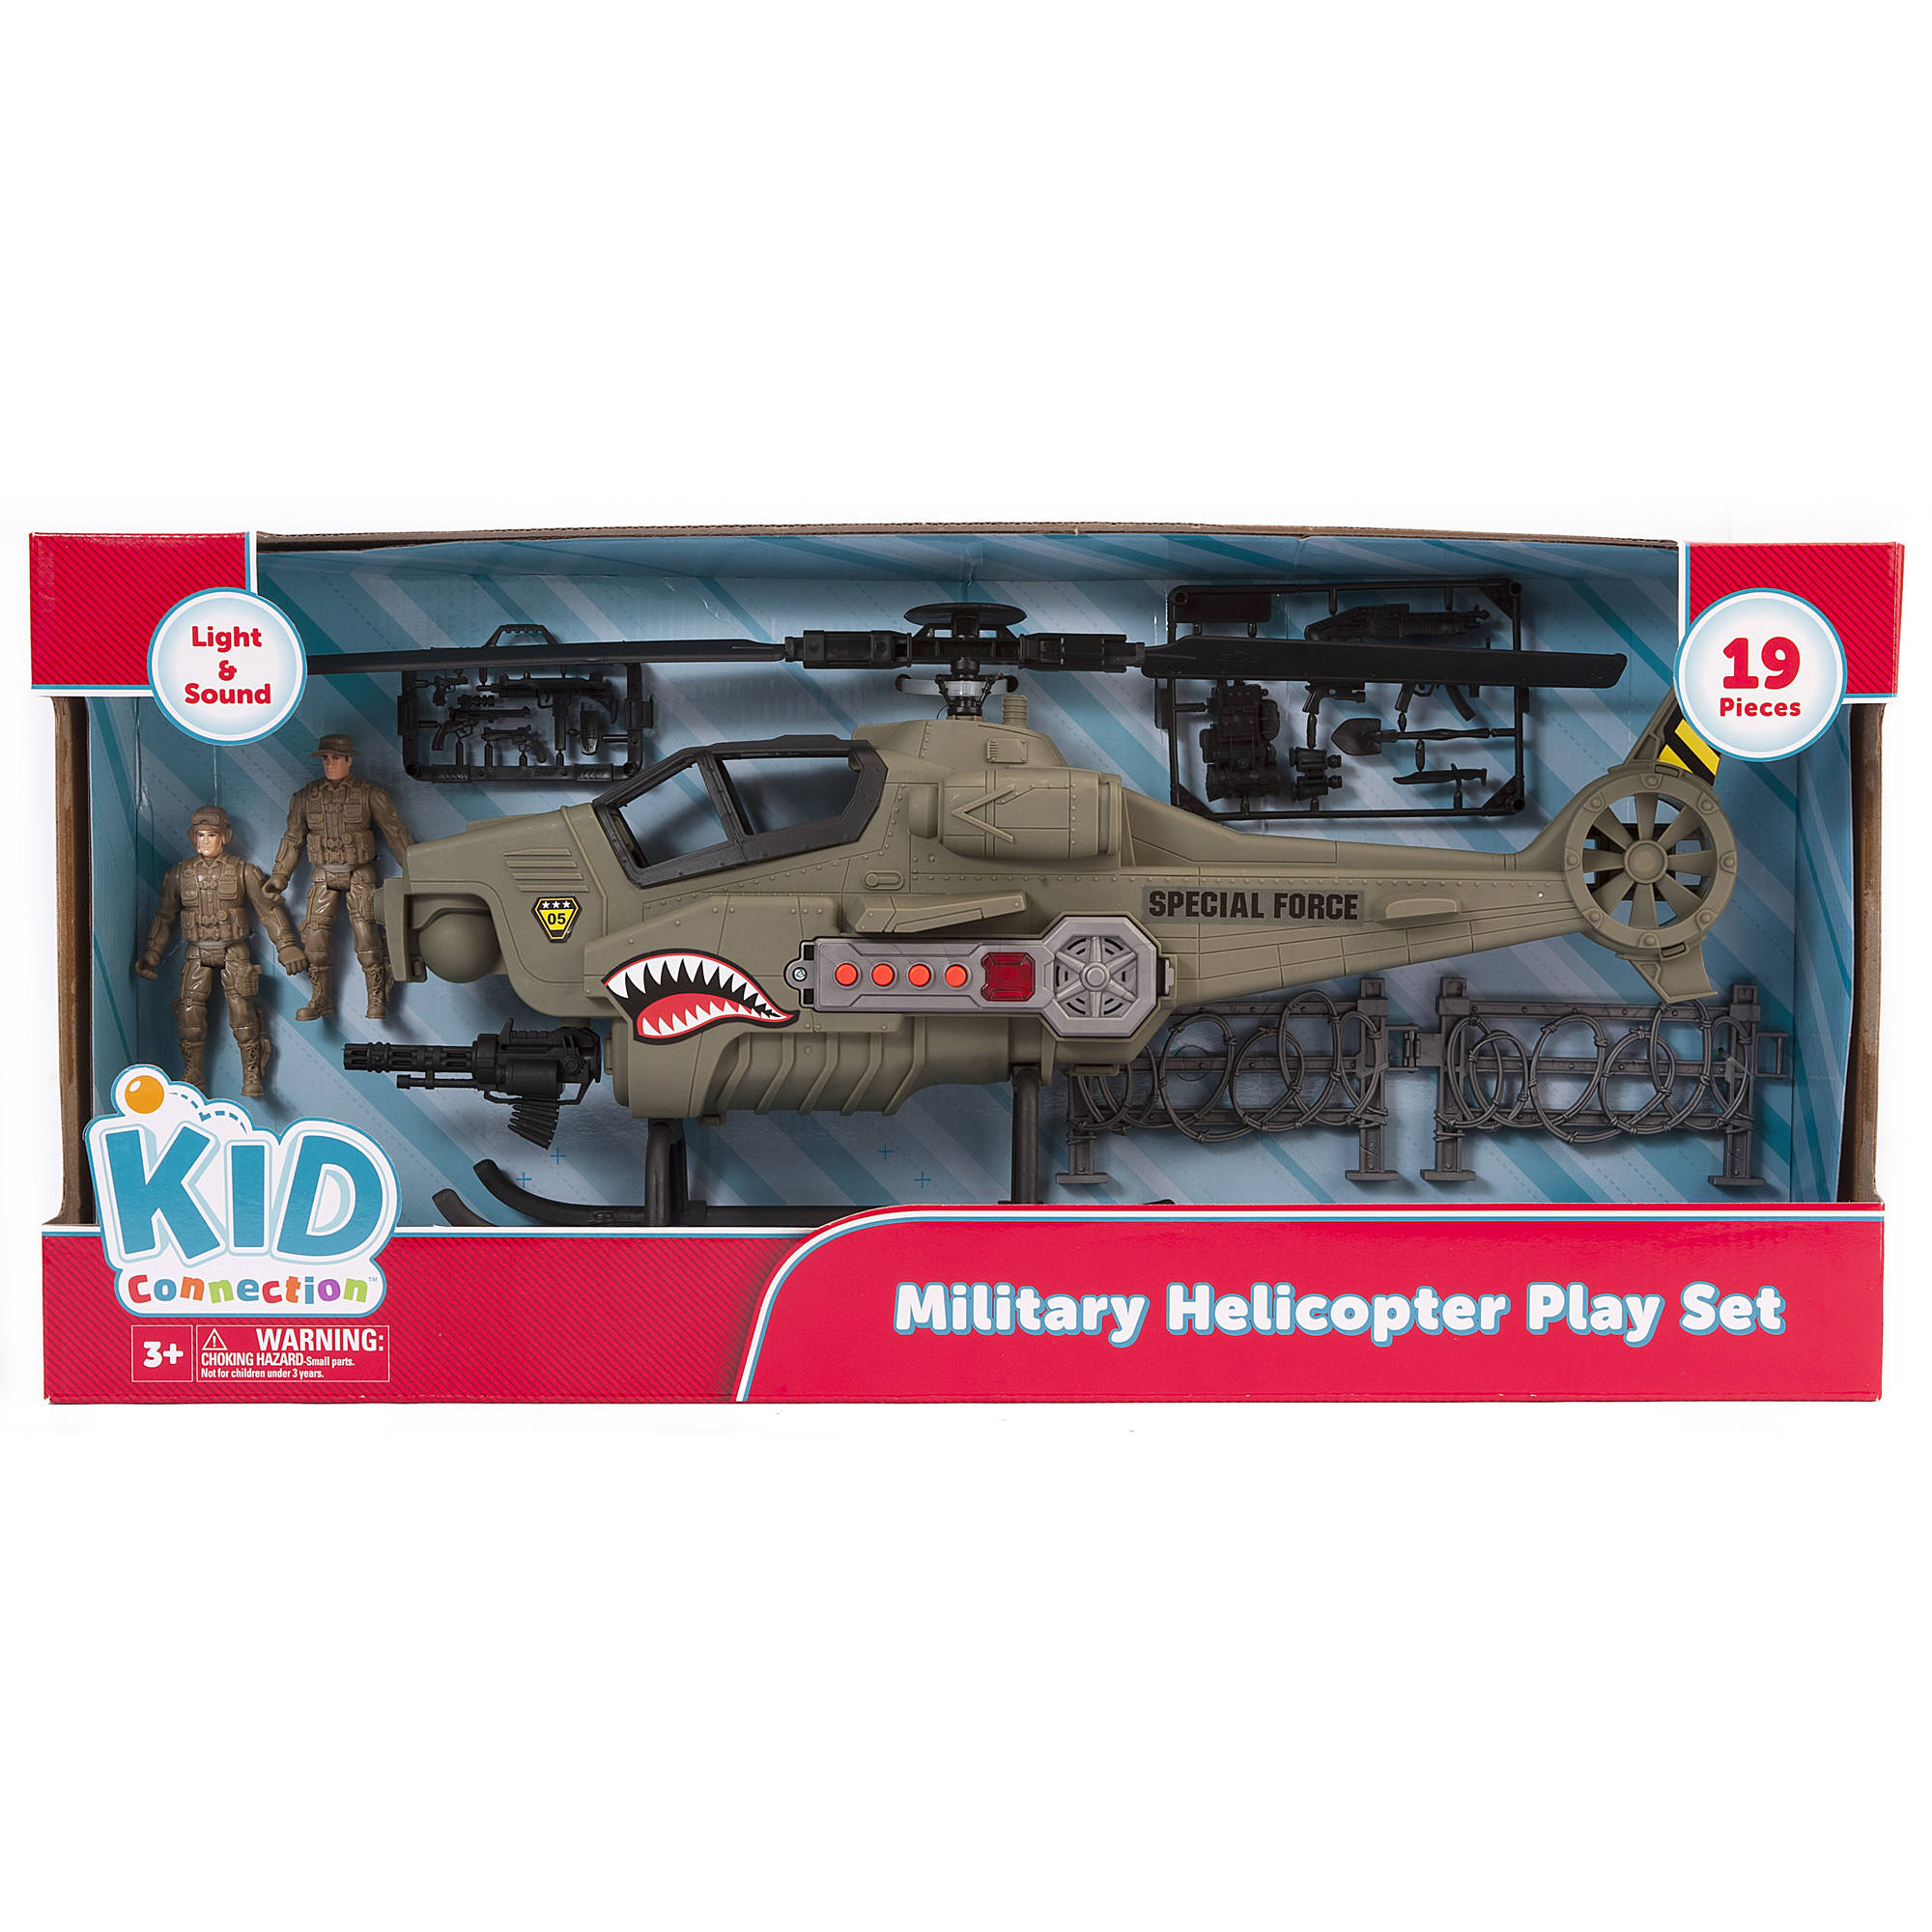 Kid Connection Military Helicopter Play Set Walmart